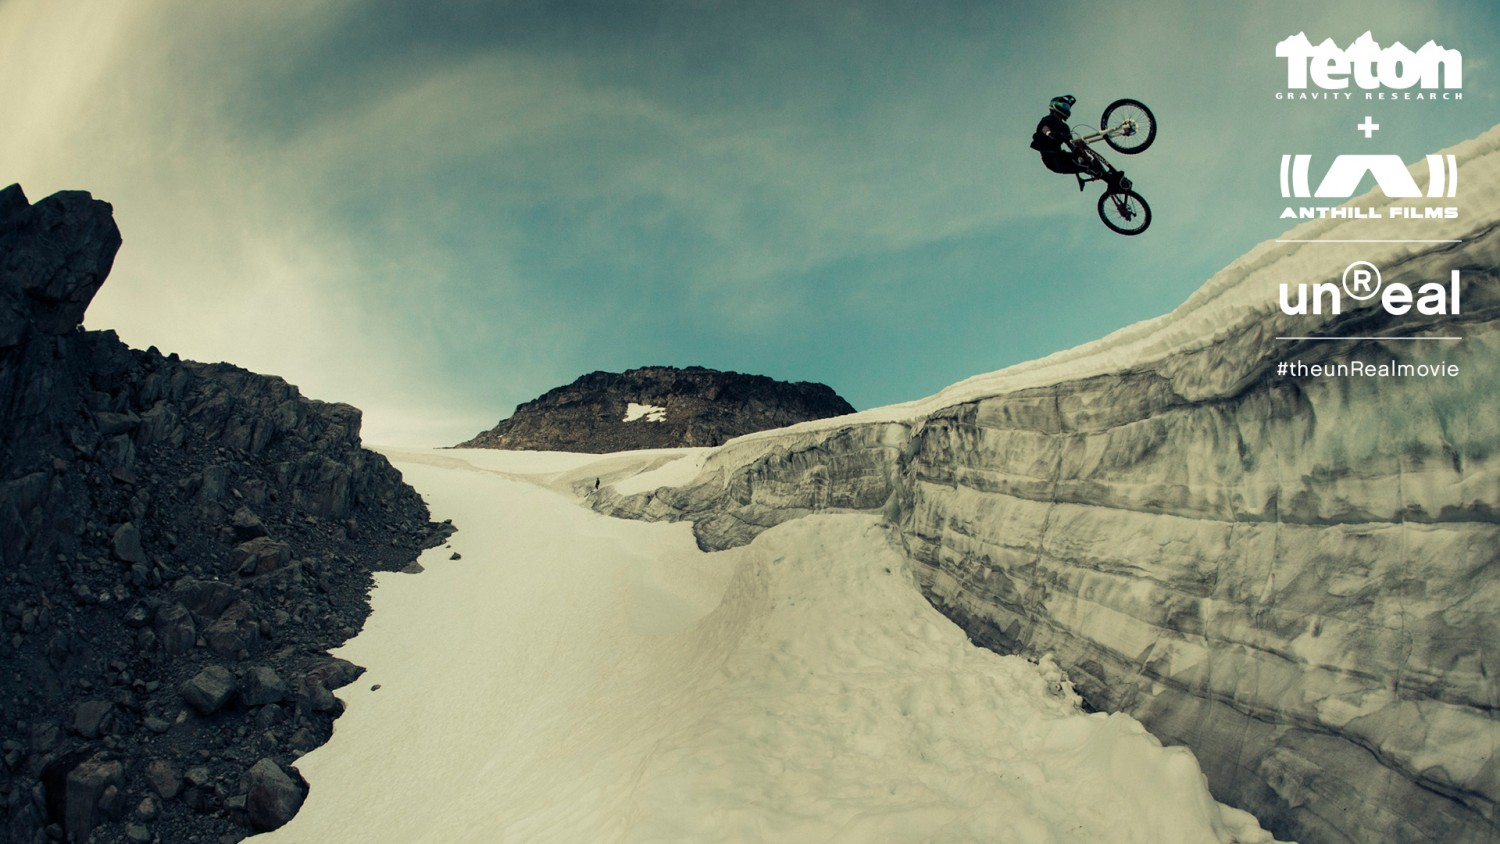 tgr-anthill-unreal-pr-images-glacier-gap-air